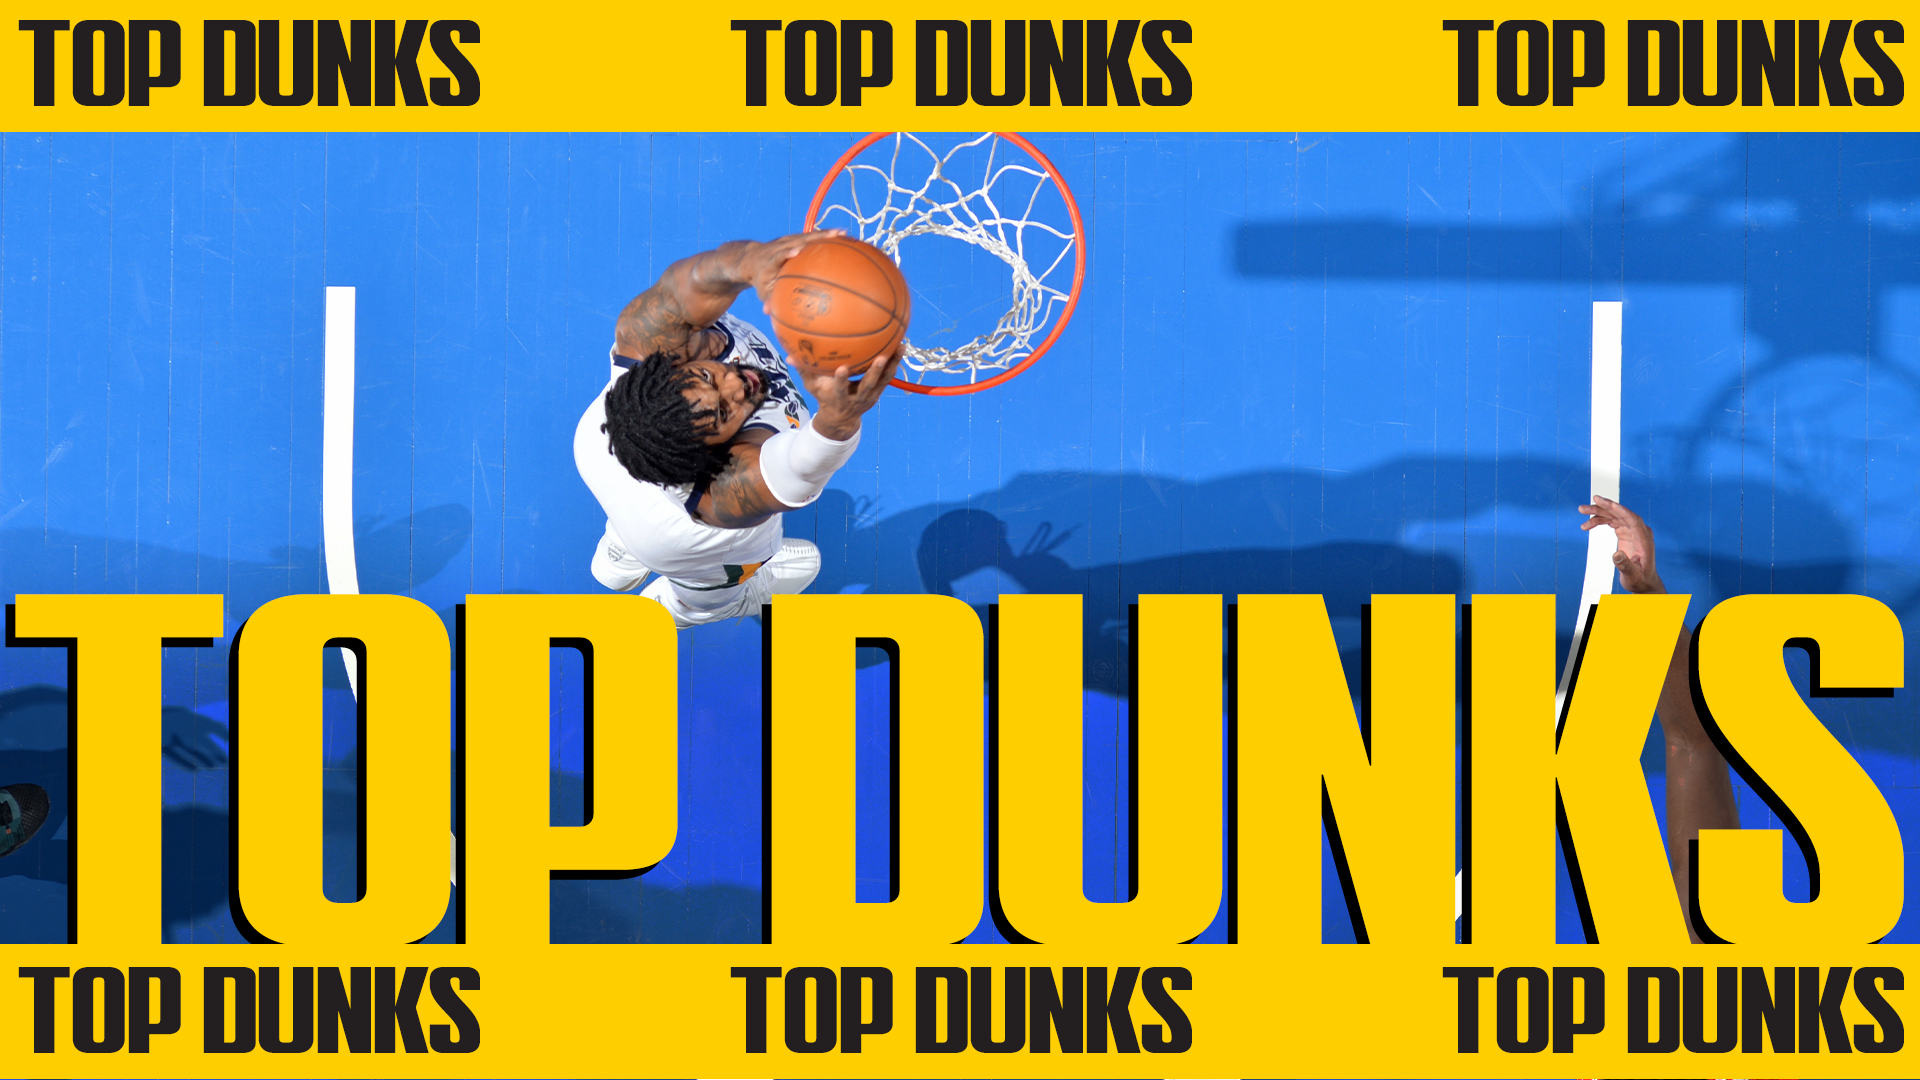 Spida gets up for the lob | #DunksOfTheWeek